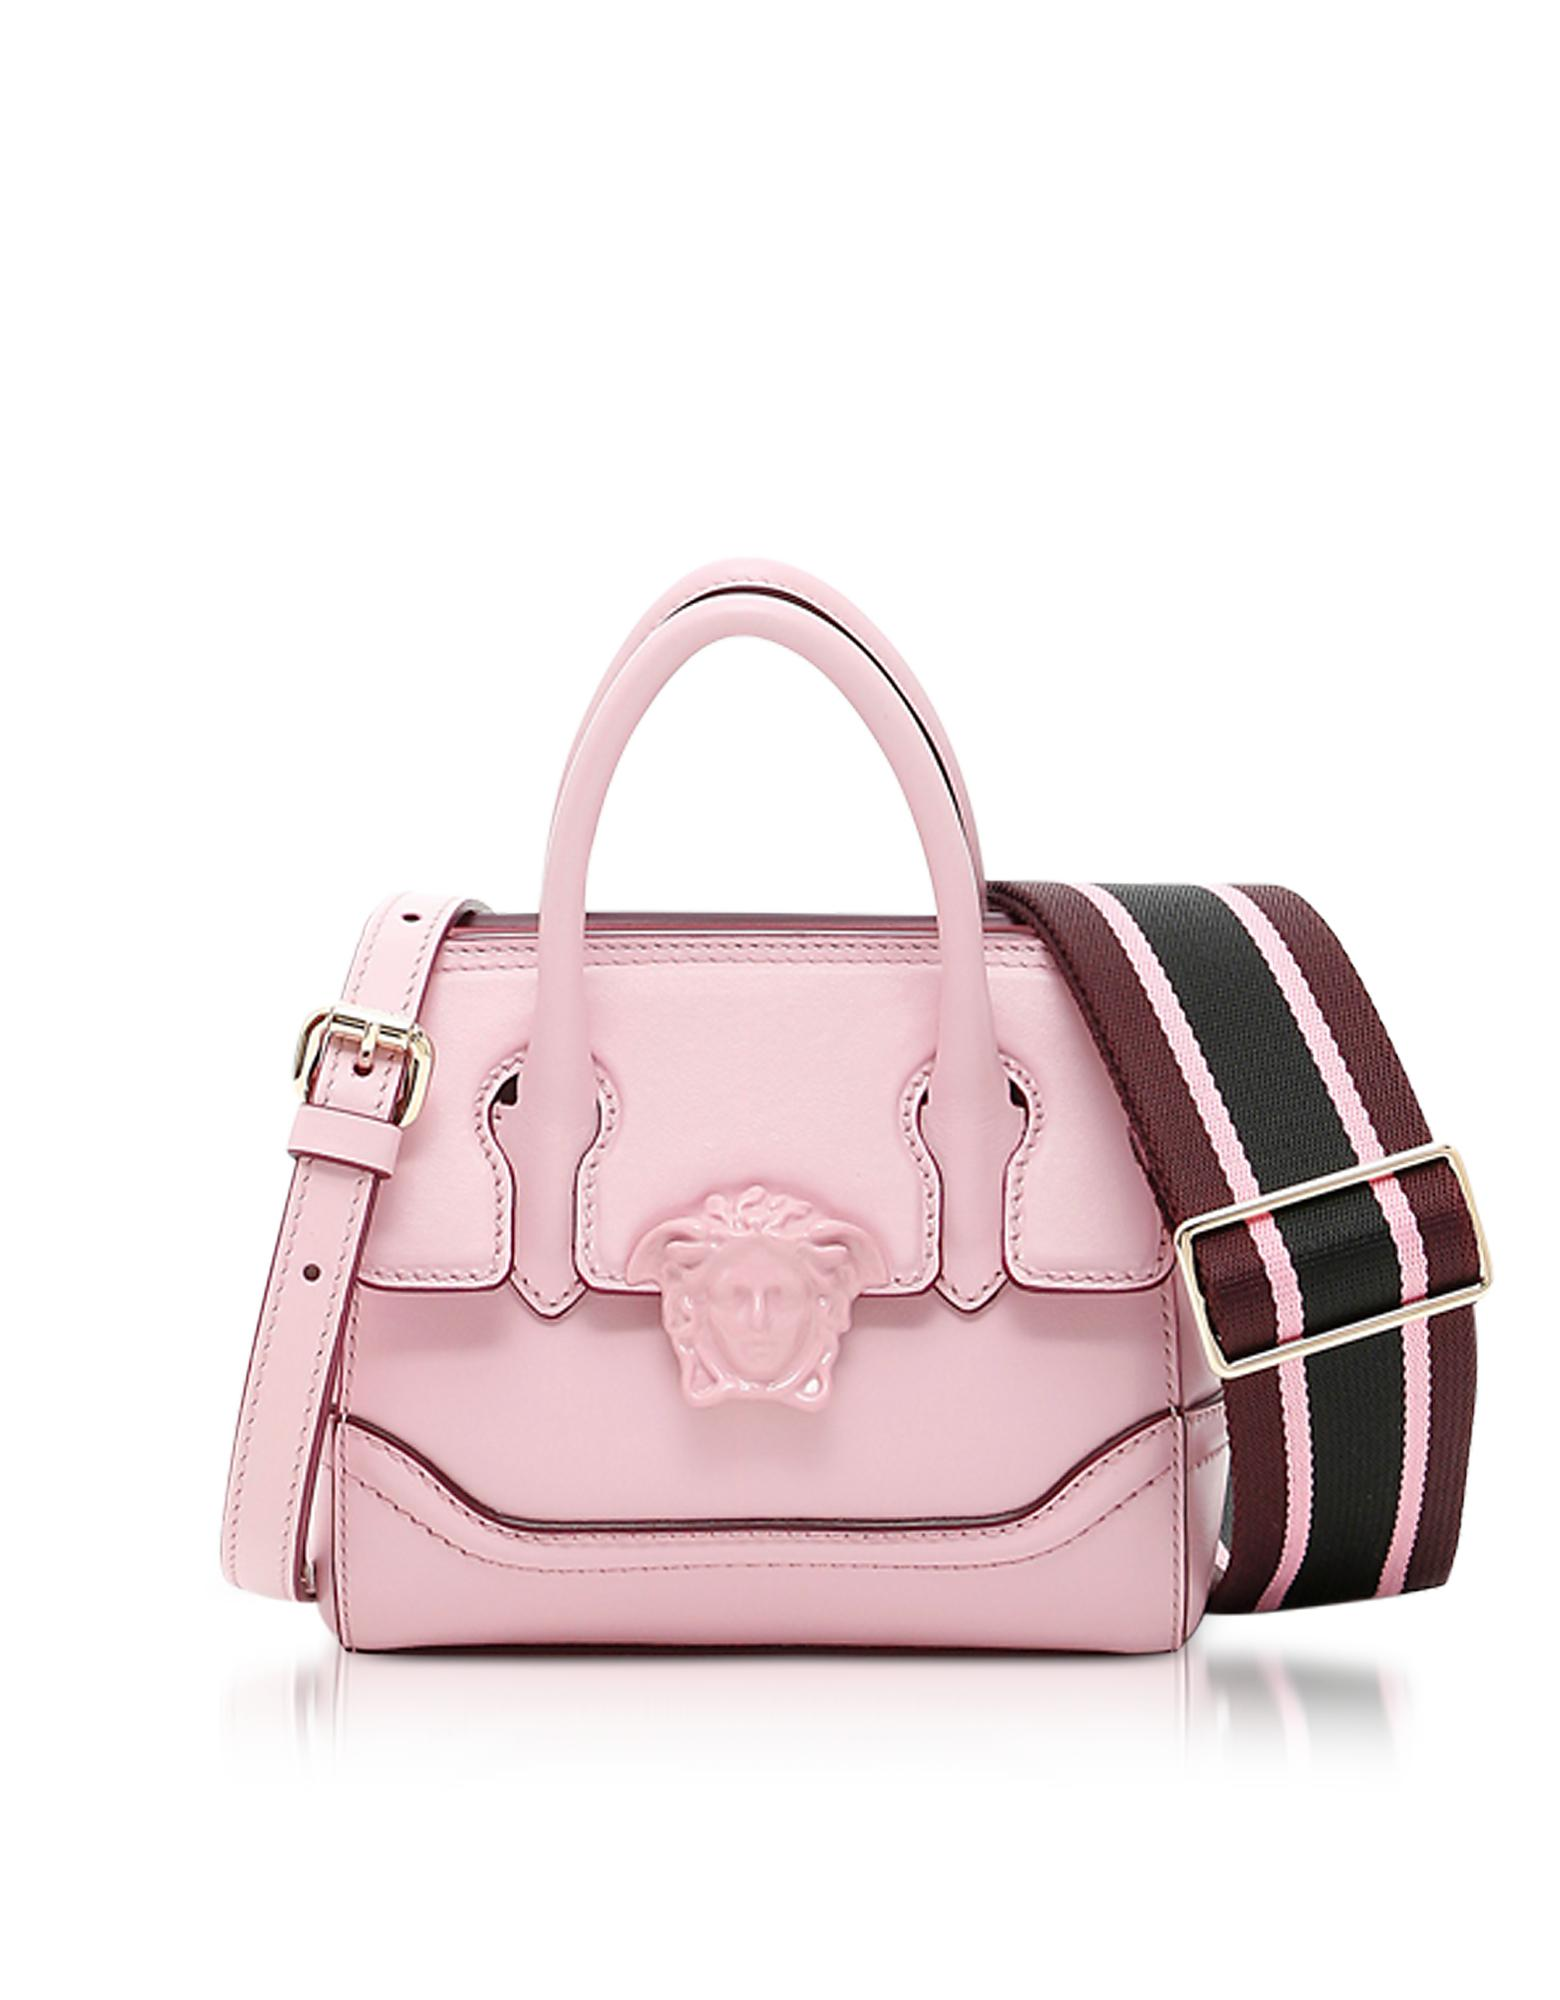 21c05a241d Versace Palazzo Empire Pink Leather Mini Handbag in Pink - Lyst